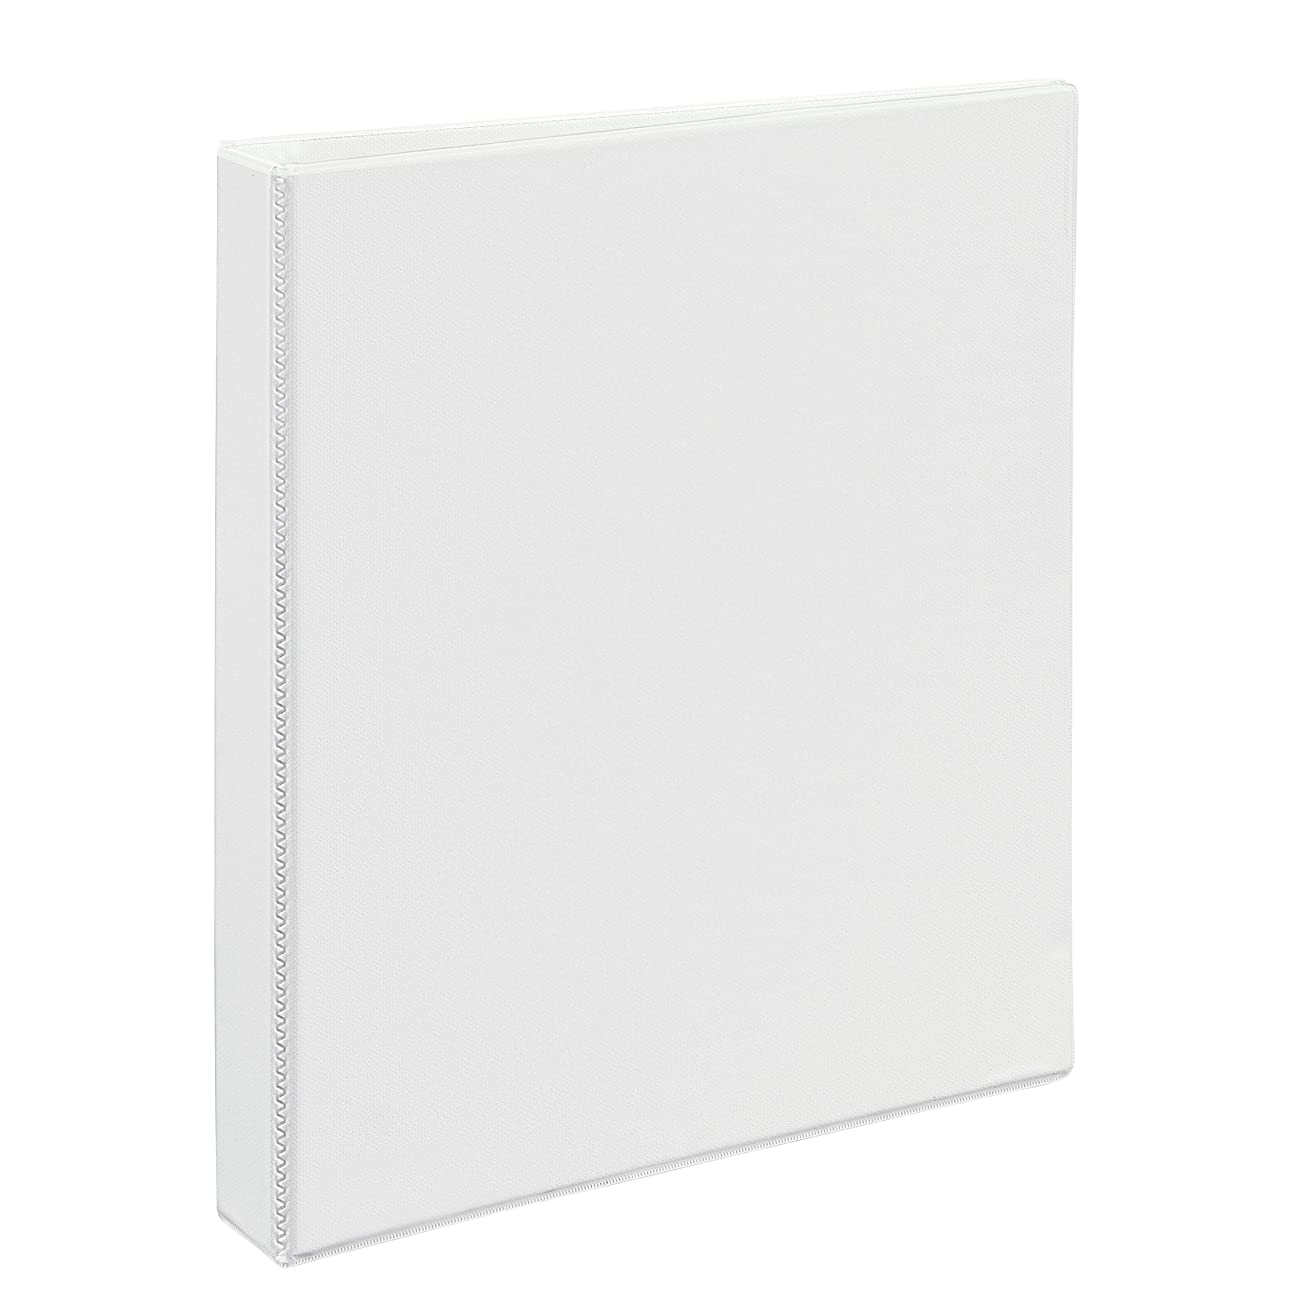 Avery Heavy-Duty Nonstick View Binder, 1 One Touch Slant Rings, 220-Sheet Capacity, DuraHinge, White (05304)